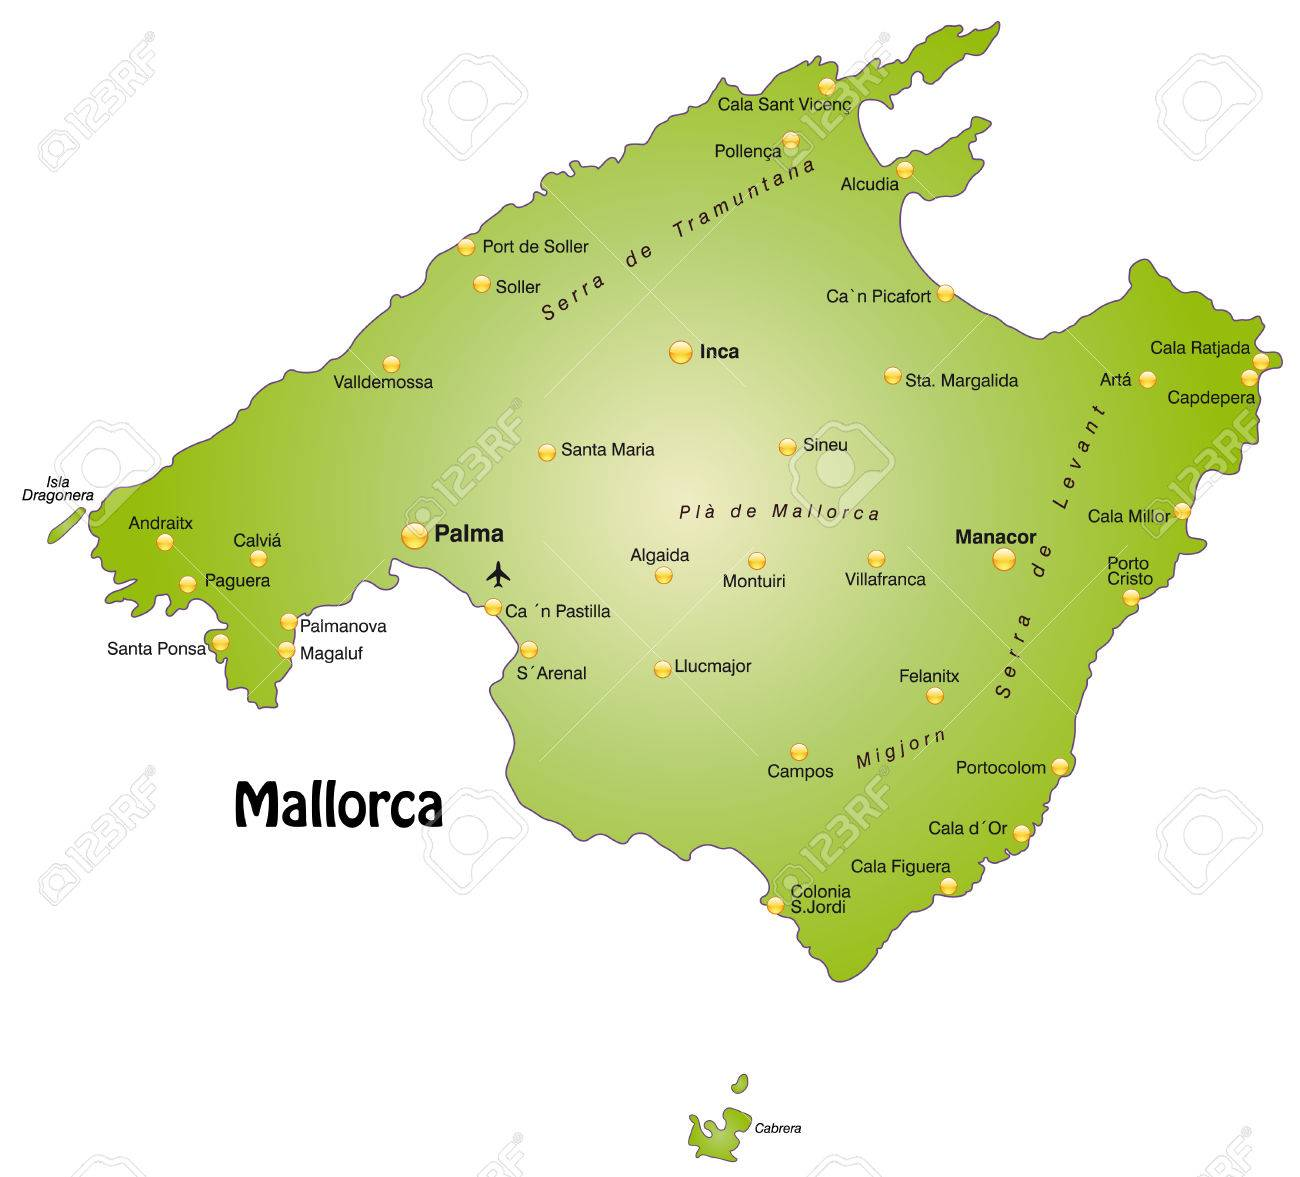 Cala Millor Karte.Map Of Mallorca As An Overview Map In Green